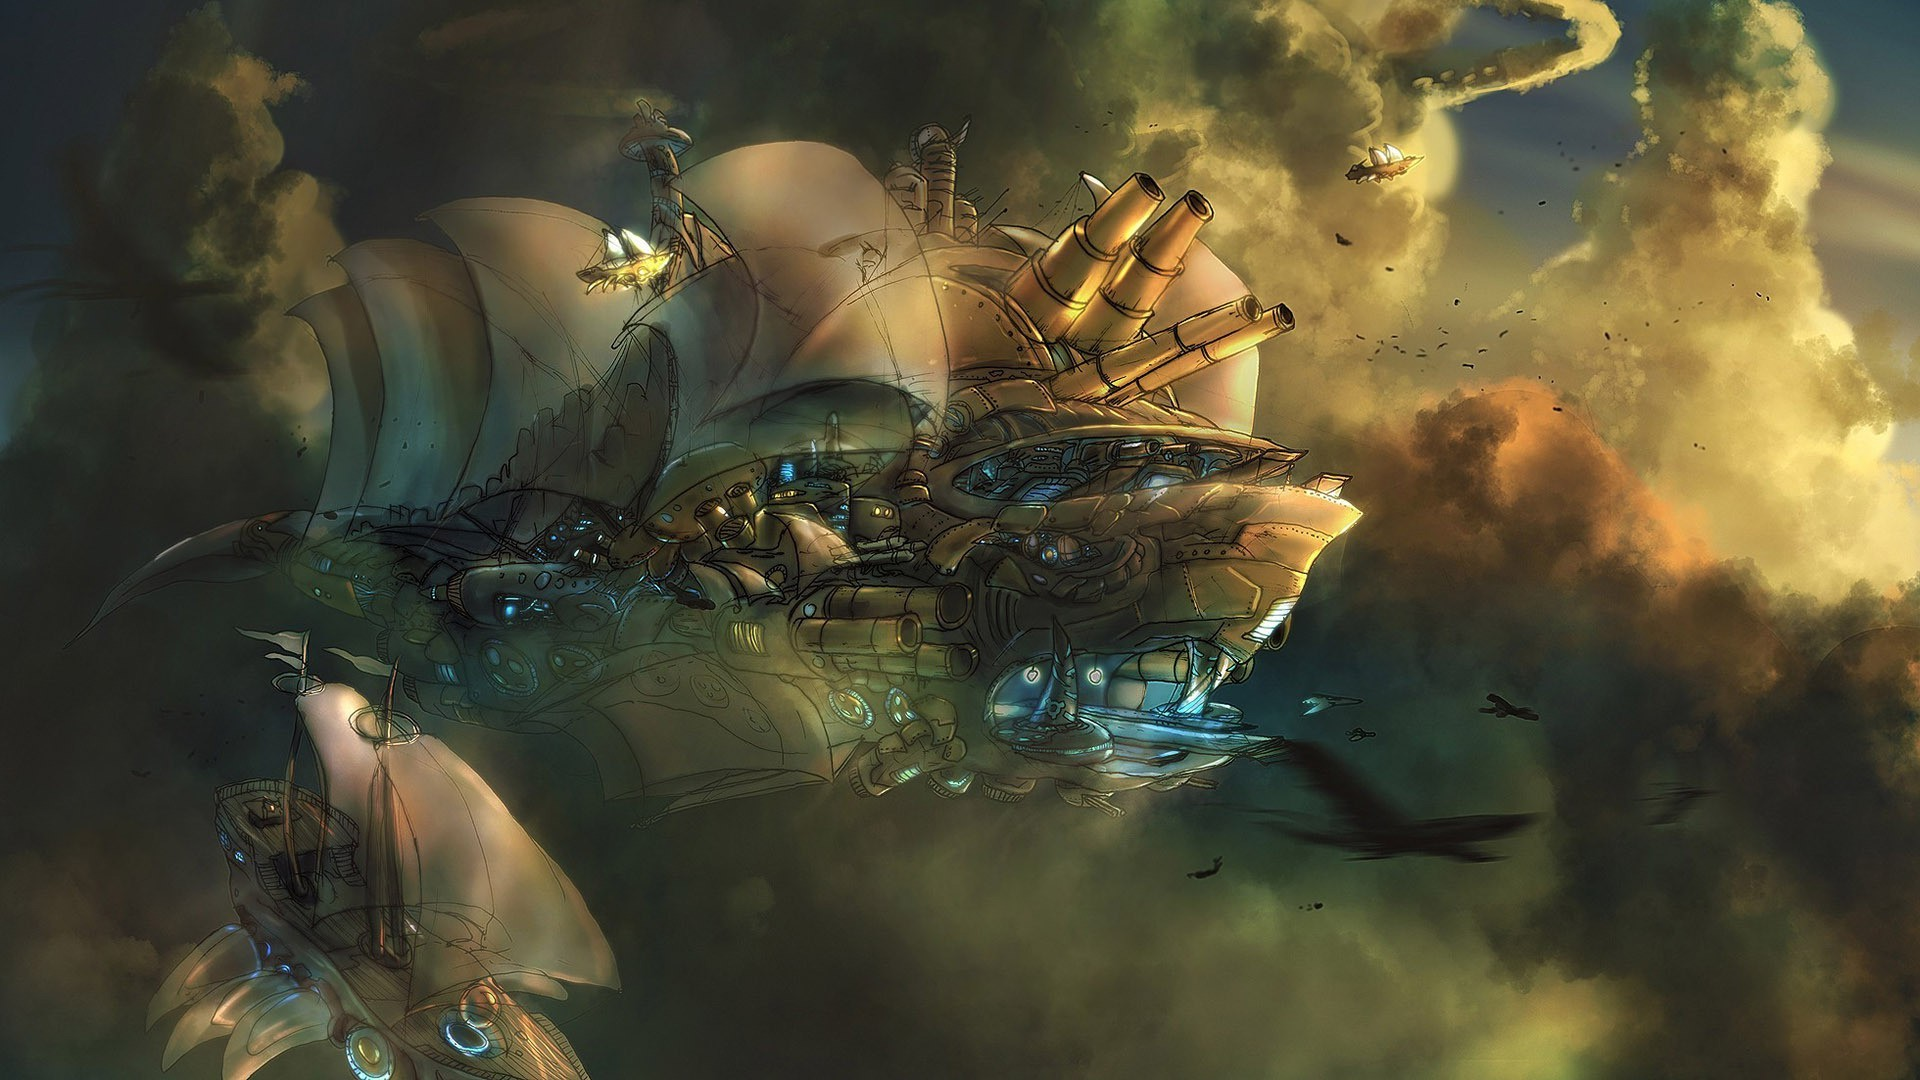 Res: 1920x1080, artwork, Fantasy Art, Concept Art, Steampunk, Aircraft, Clouds Wallpapers HD  / Desktop and Mobile Backgrounds